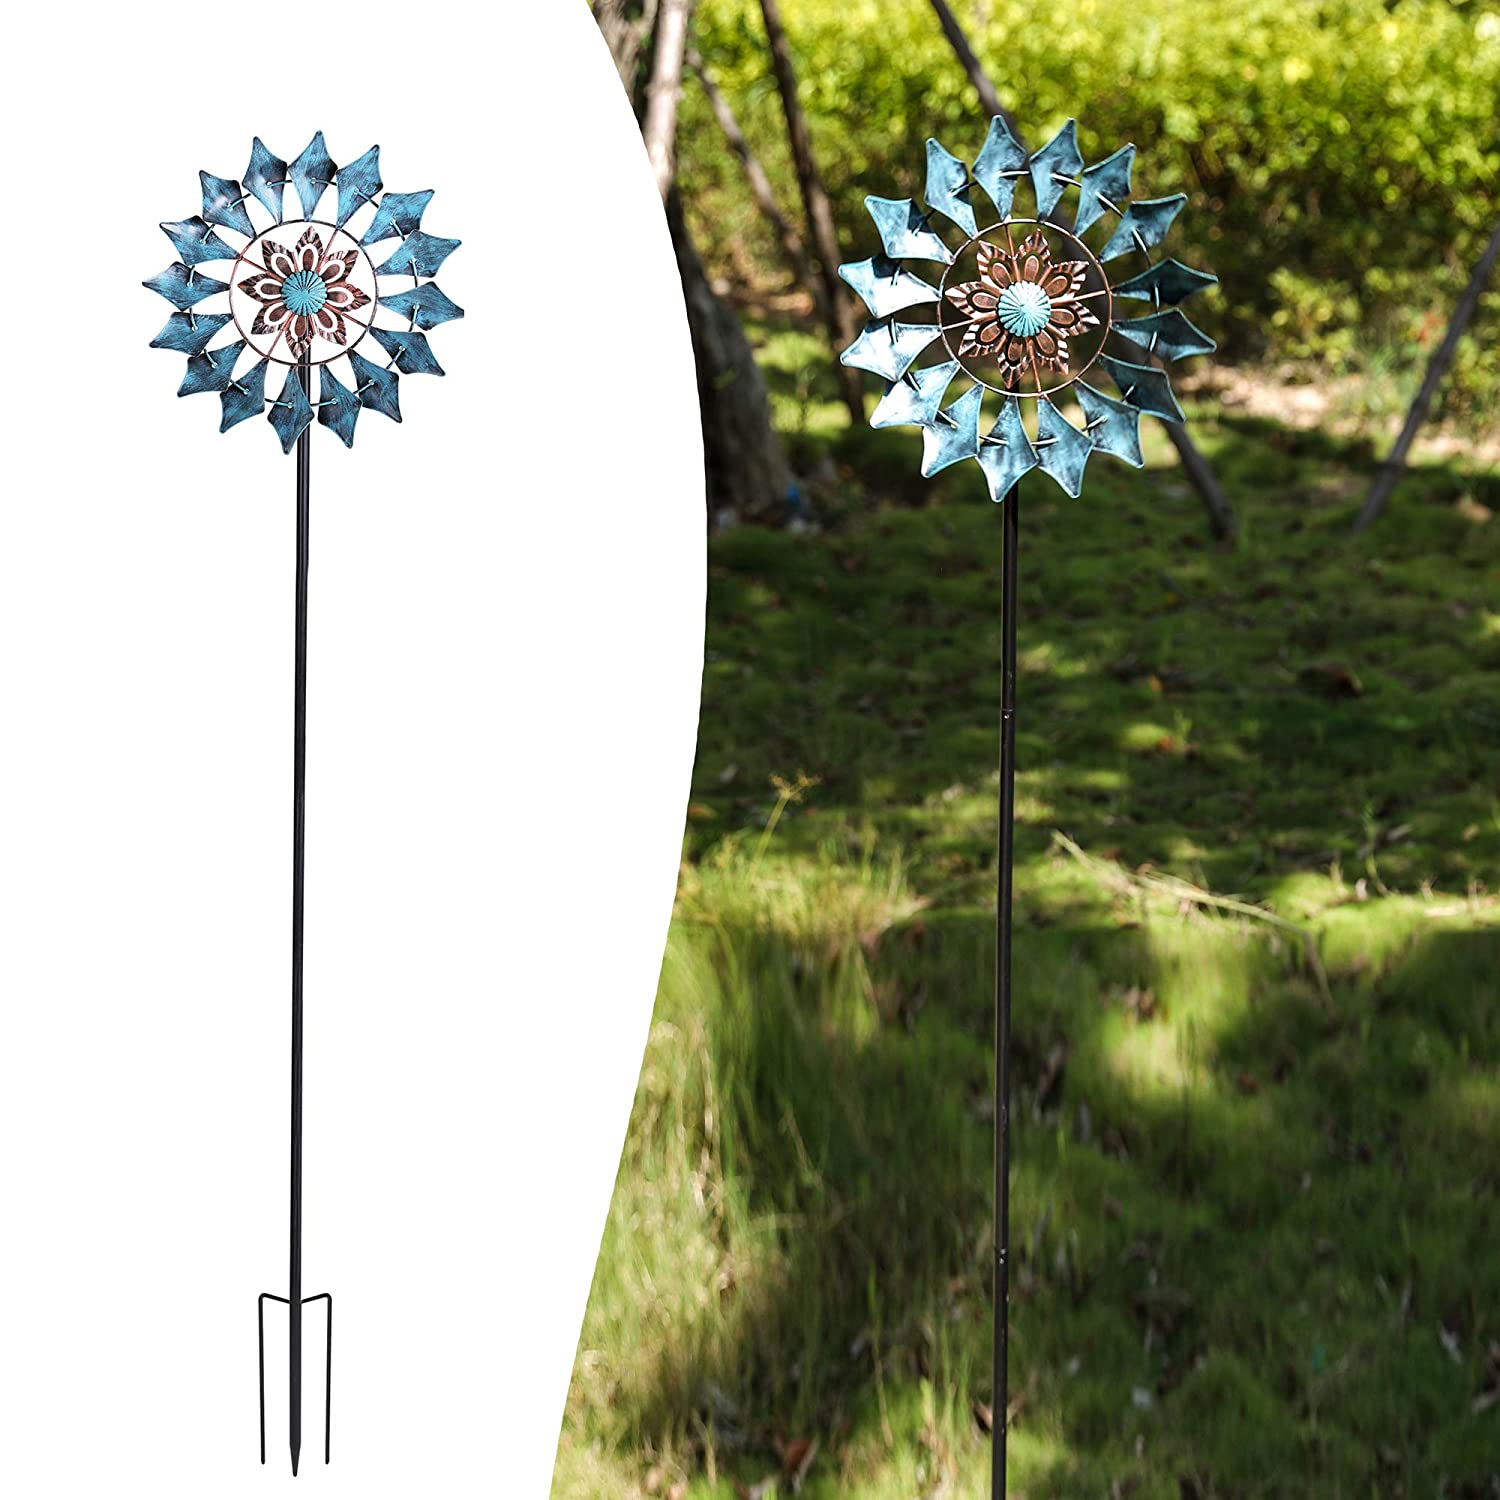 Wind Spinner Emerald 61in Single Blade Easy Spinning Kinetic Wind Spinner for Outside – Vertical Metal Sculpture Stake Construction for Outdoor Yard Lawn & Garden